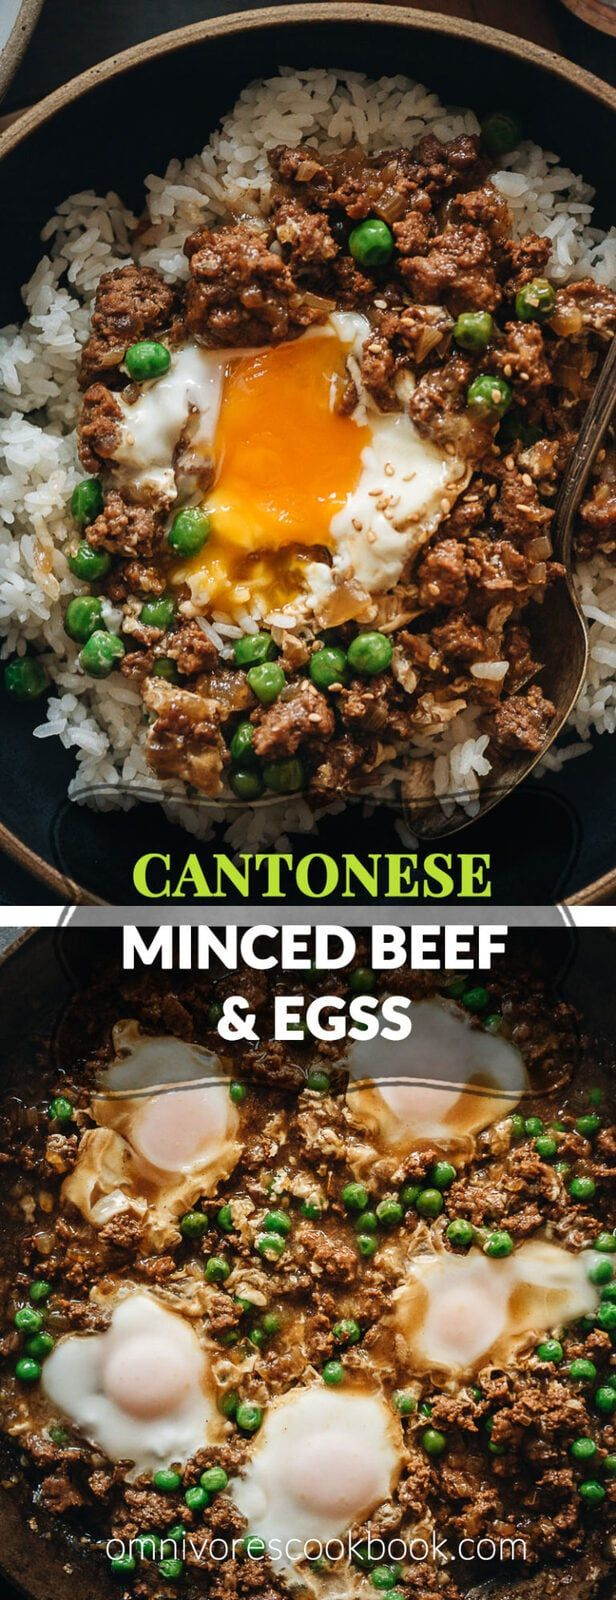 Cantonese Ground Beef Rice And Eggs A Super Easy Cantonese Minced Beef Bowl Cooked With An Oyster Ground Beef Rice Beef Recipes Easy Minced Beef Recipes Easy